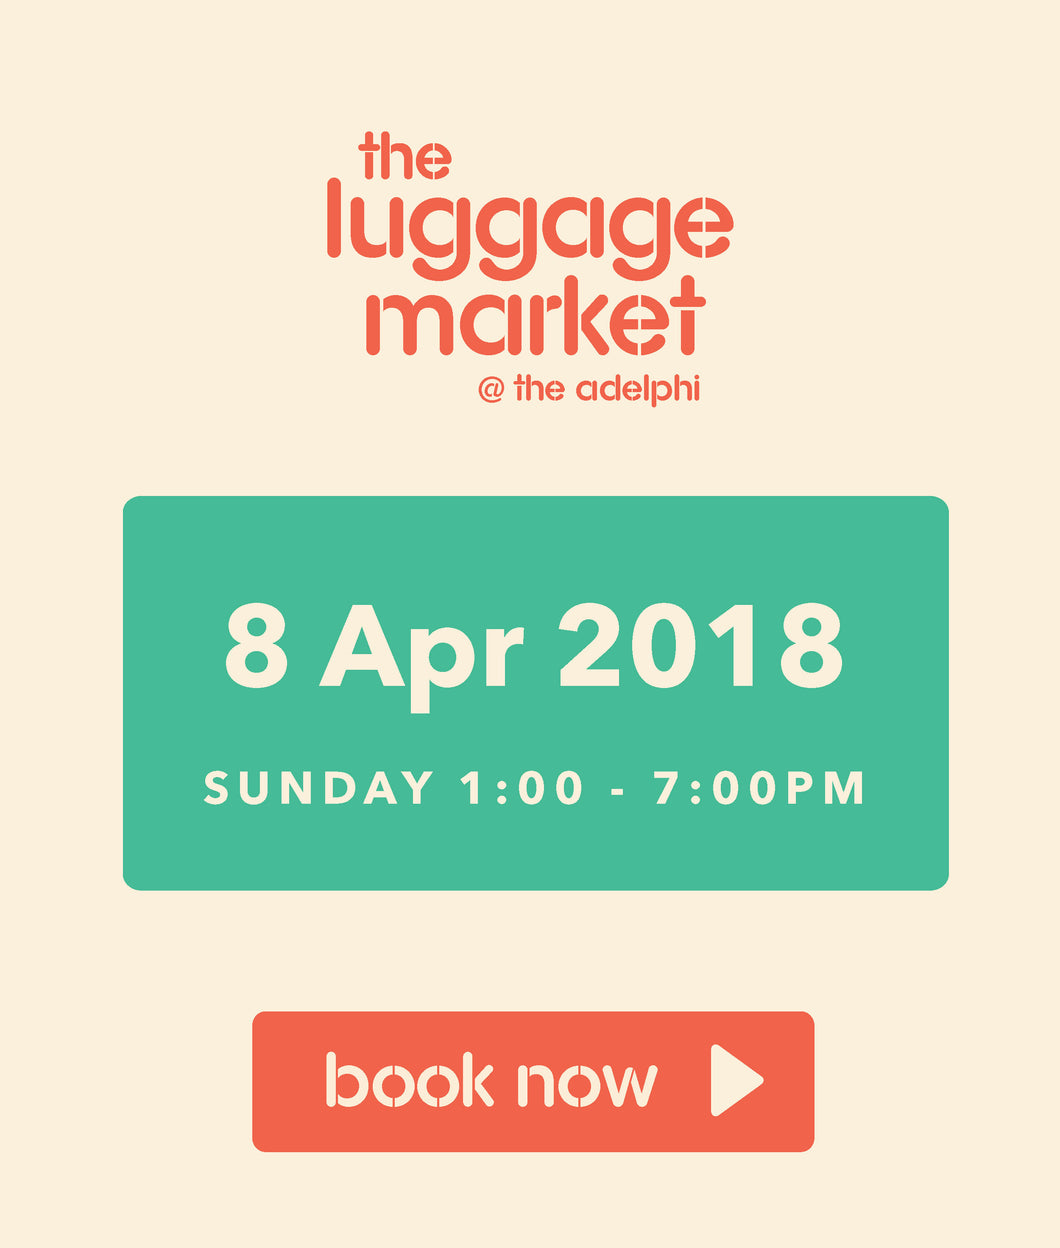 The Luggage Market Booth | 8 Apr 2018